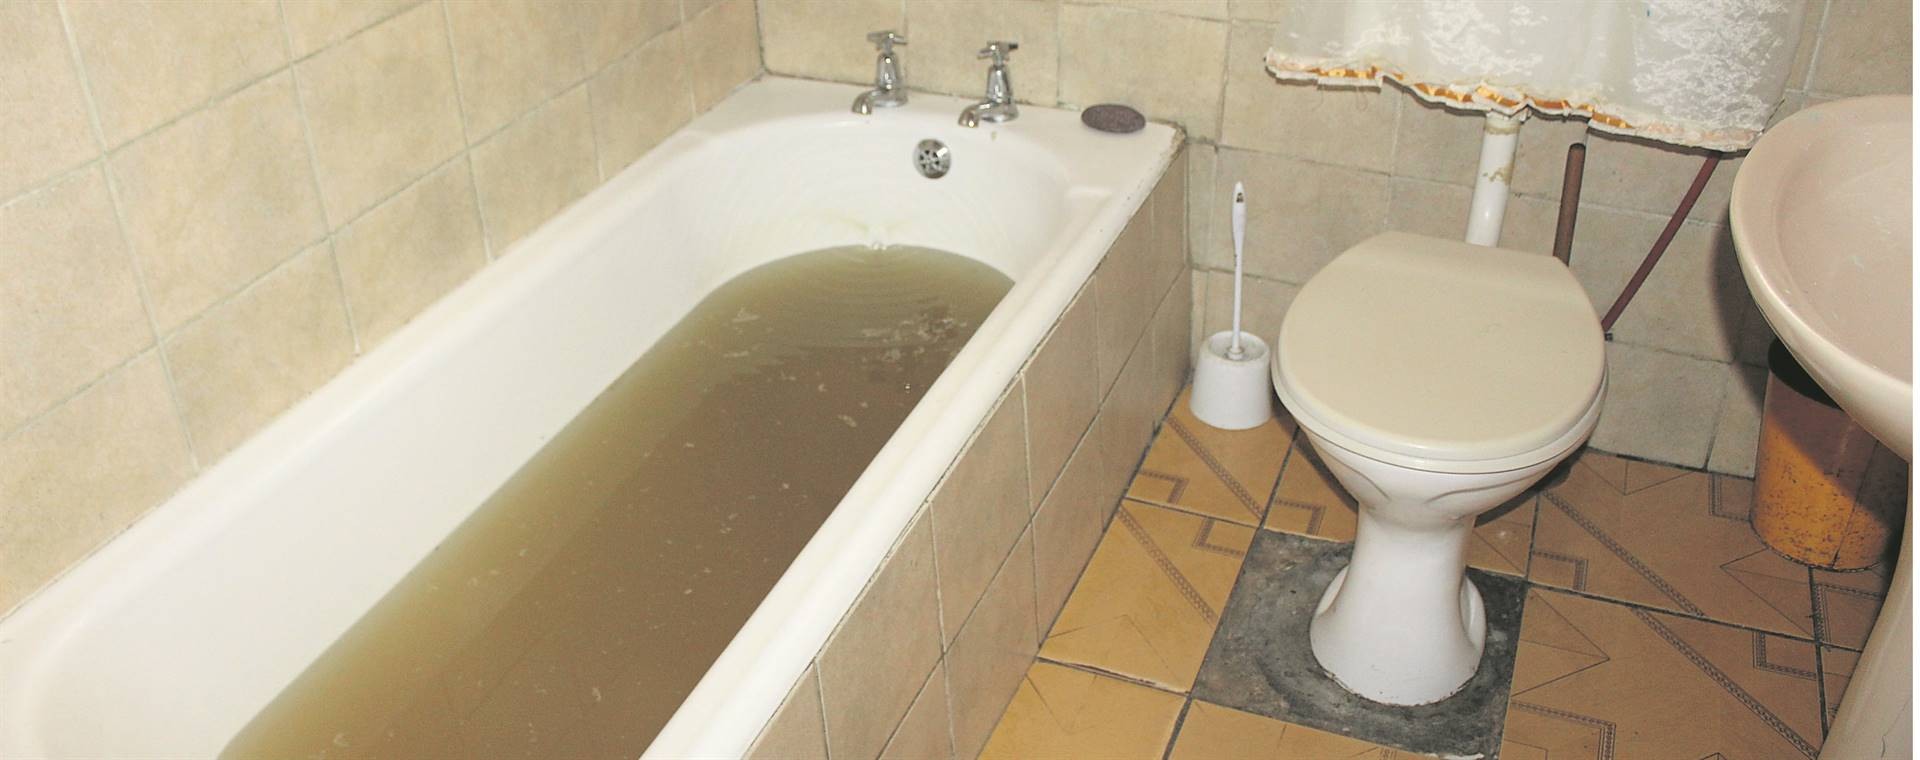 Sewage comes up from the bathtub in this home in Nomzamo. PHOTOS: Velani Ludidi